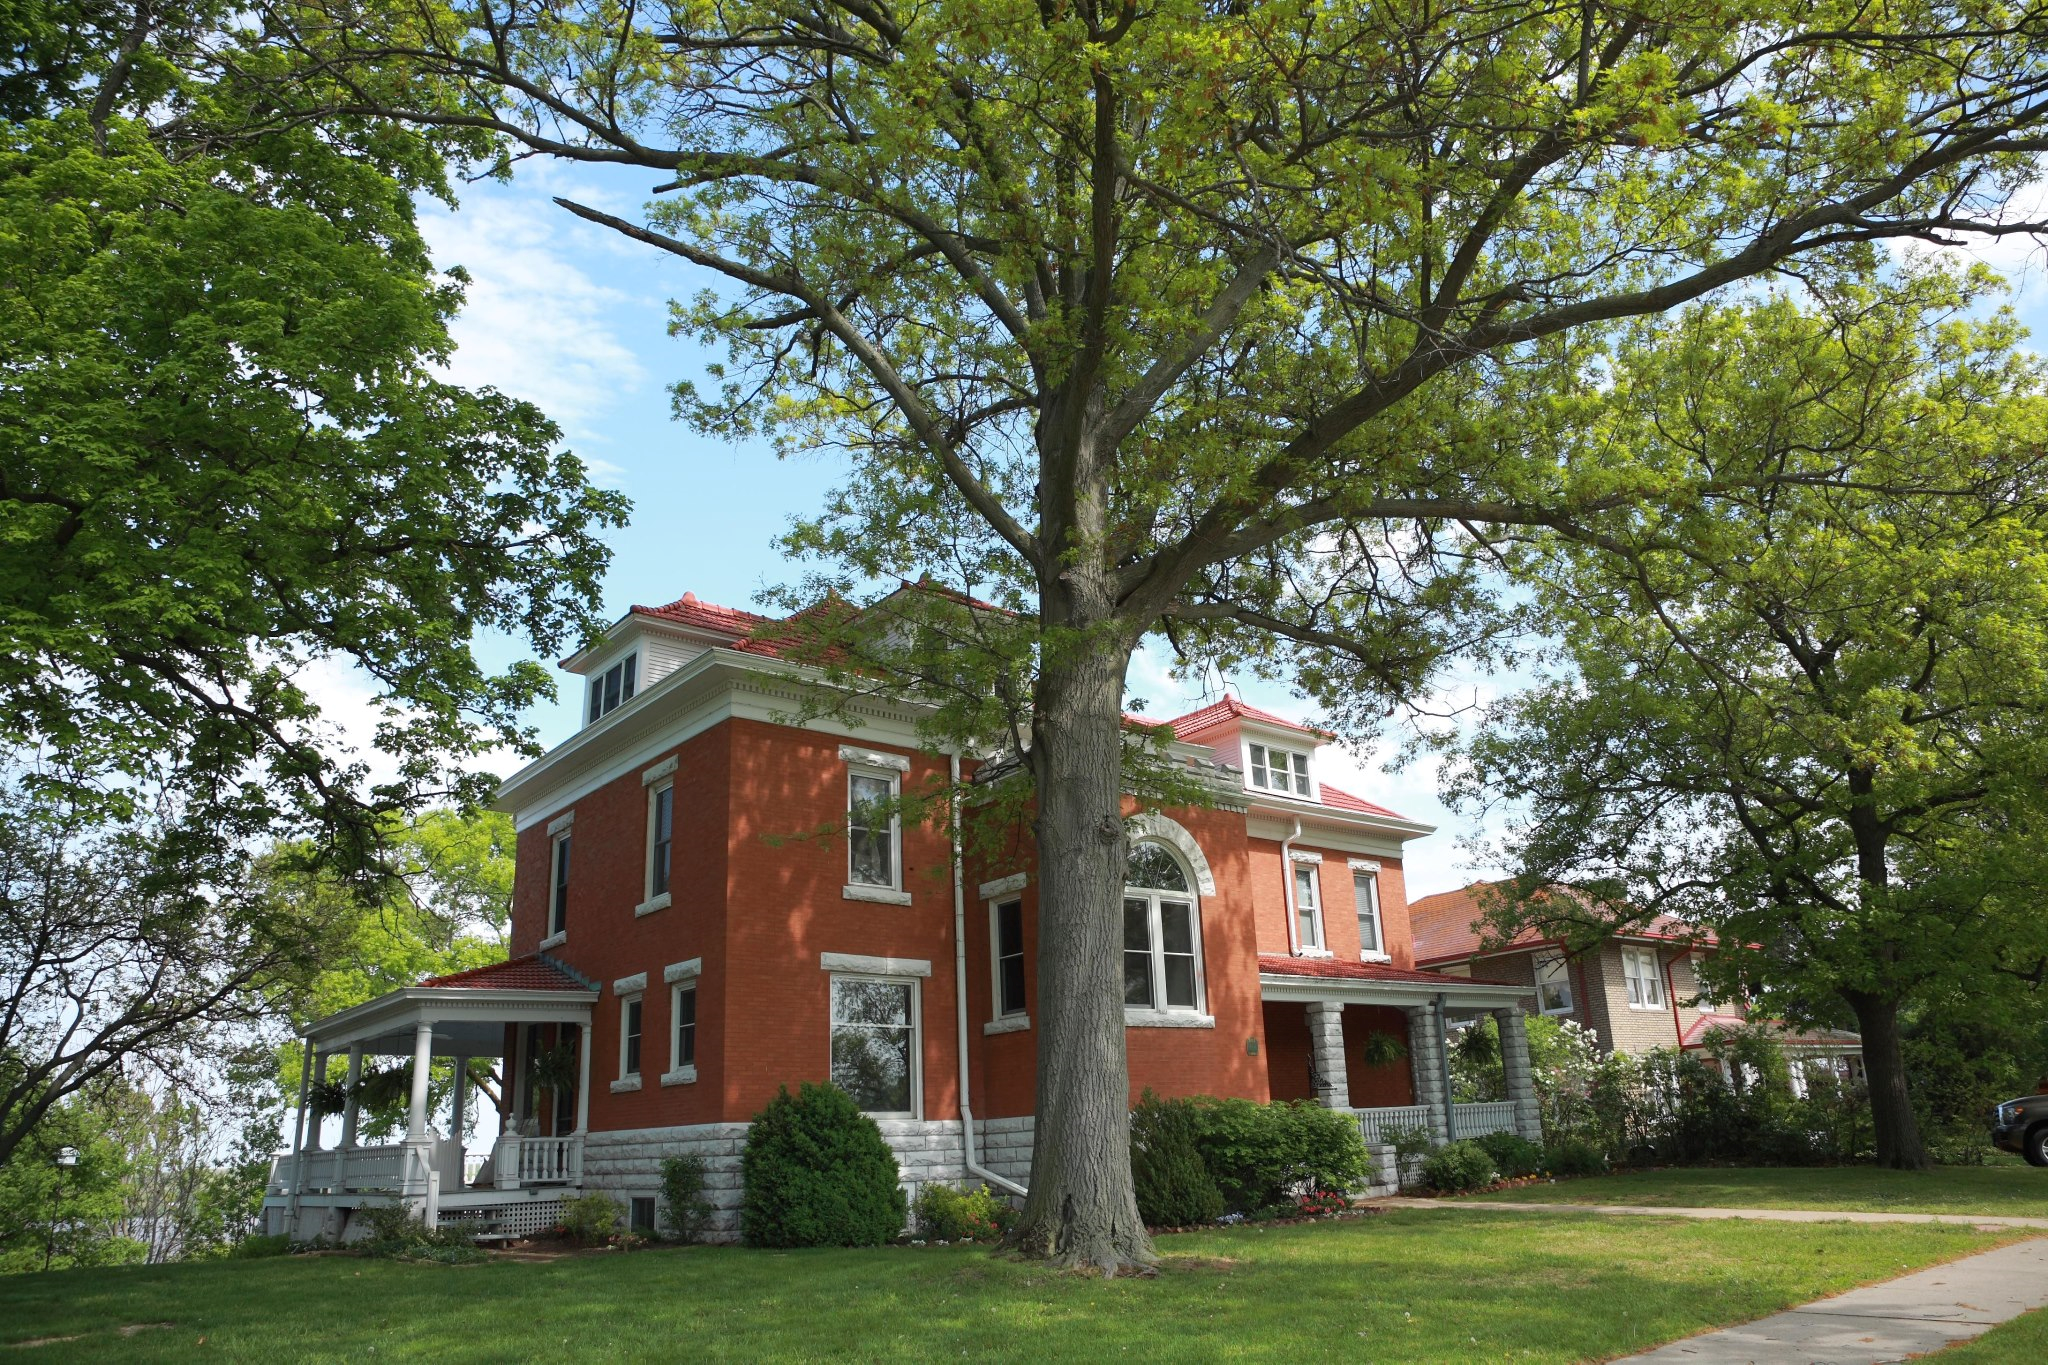 Victorian homes for sale in mississippi - Restored Historic Mansion Near Nauvoo Il With Panoramic Mississippi River Views